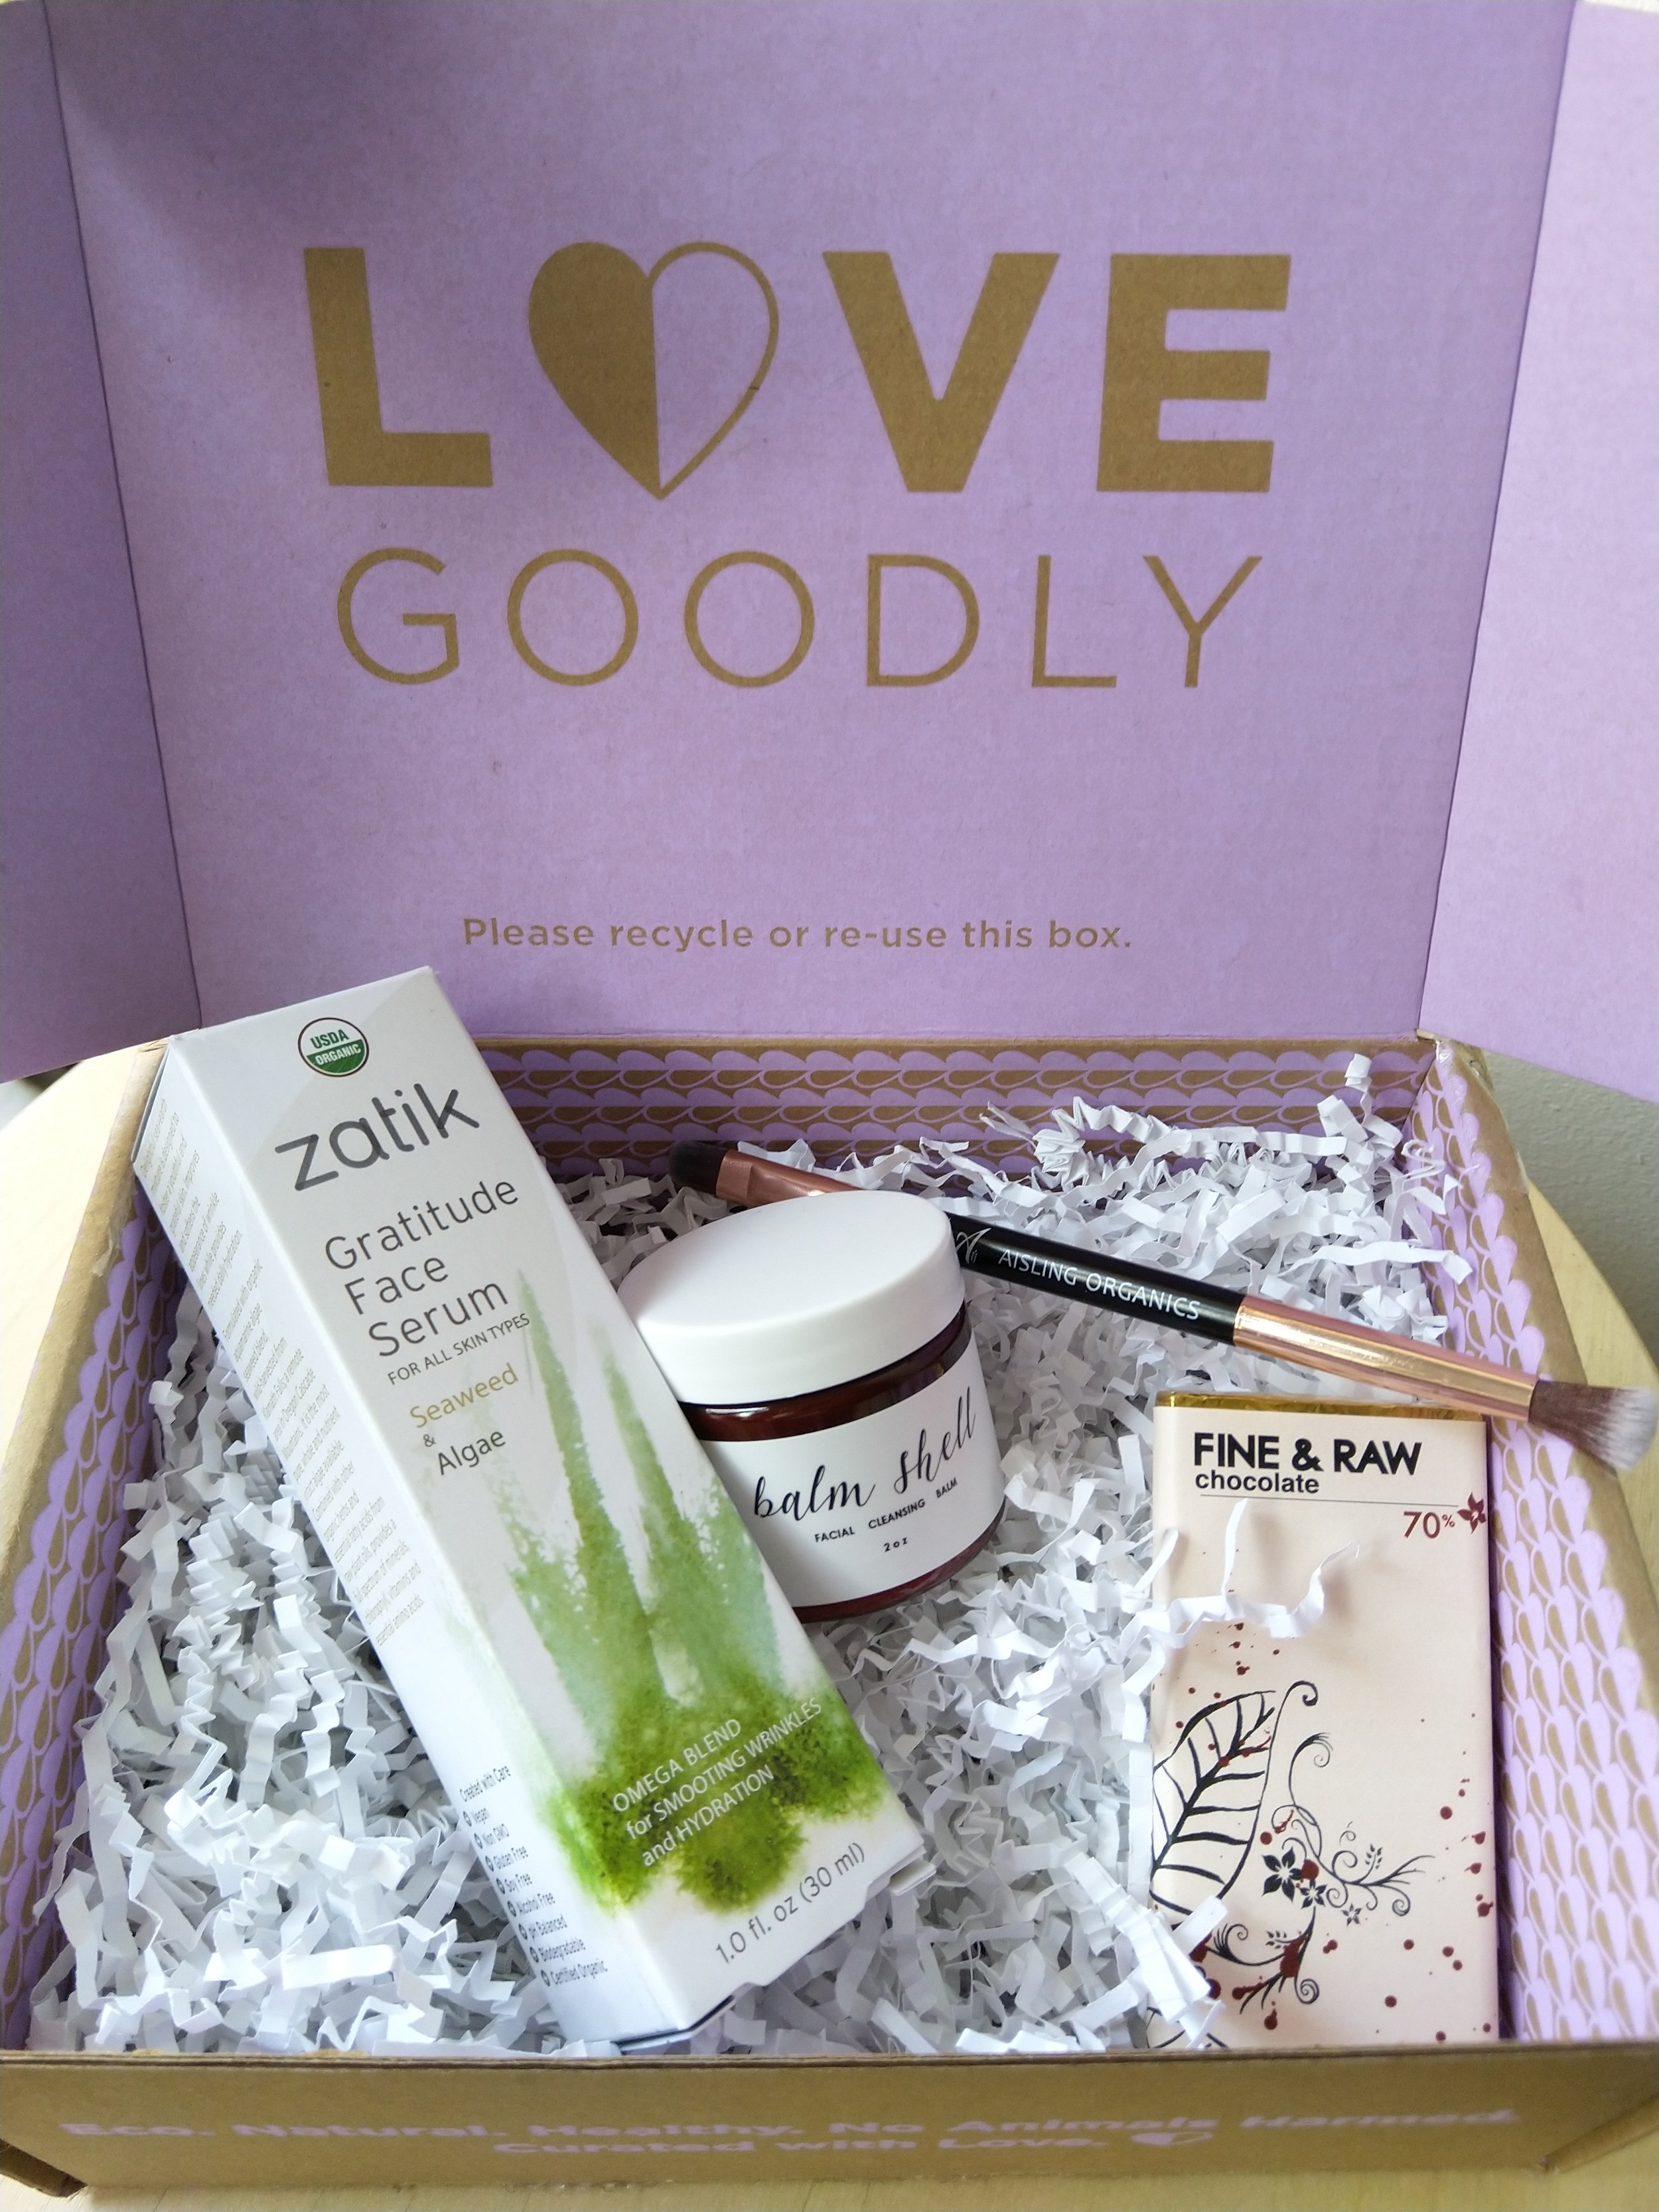 Image: Love Goodly Beauty Box / Image: Author's own